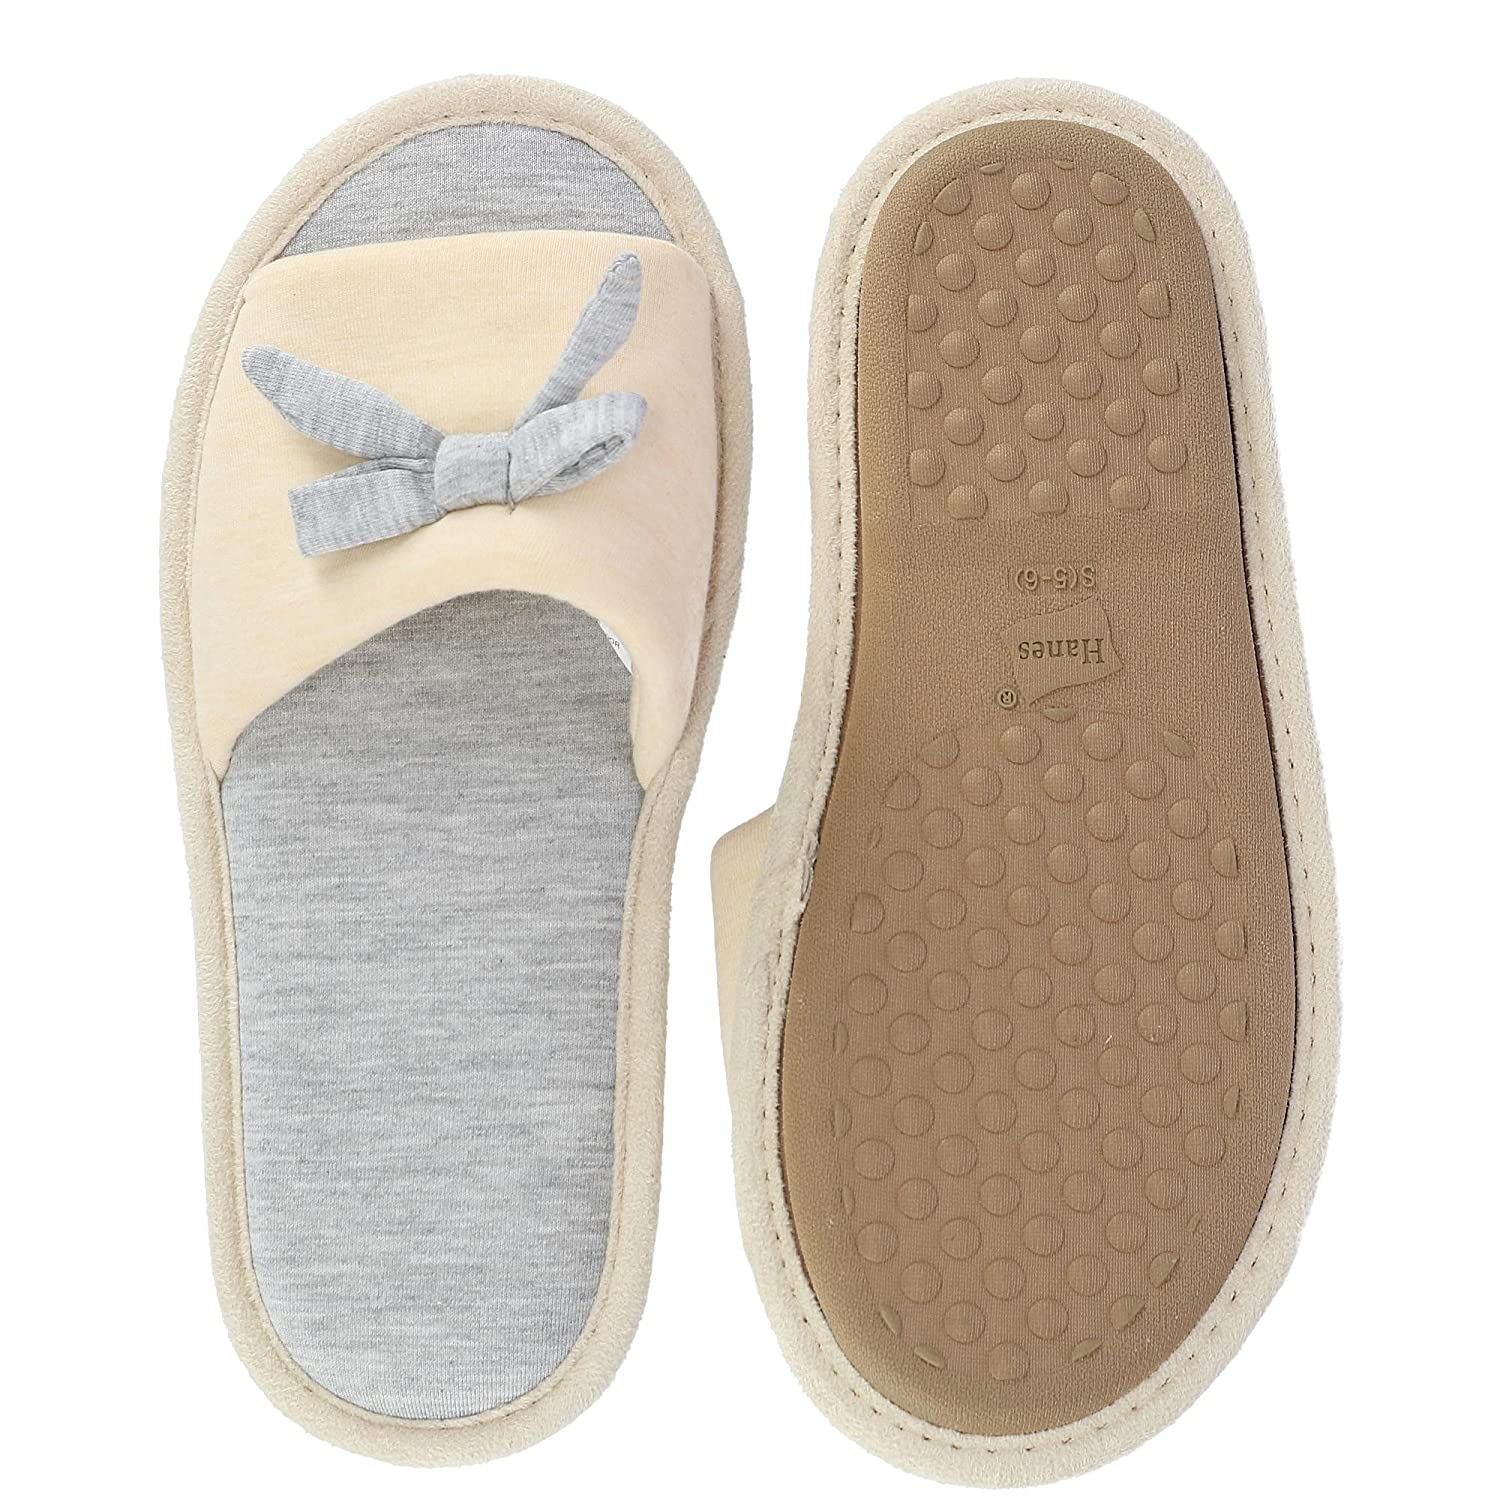 39e7cf739 Amazon.com | Hanes Women's Heather Jersey Open Toe Slide Slipper with Bow |  Slippers